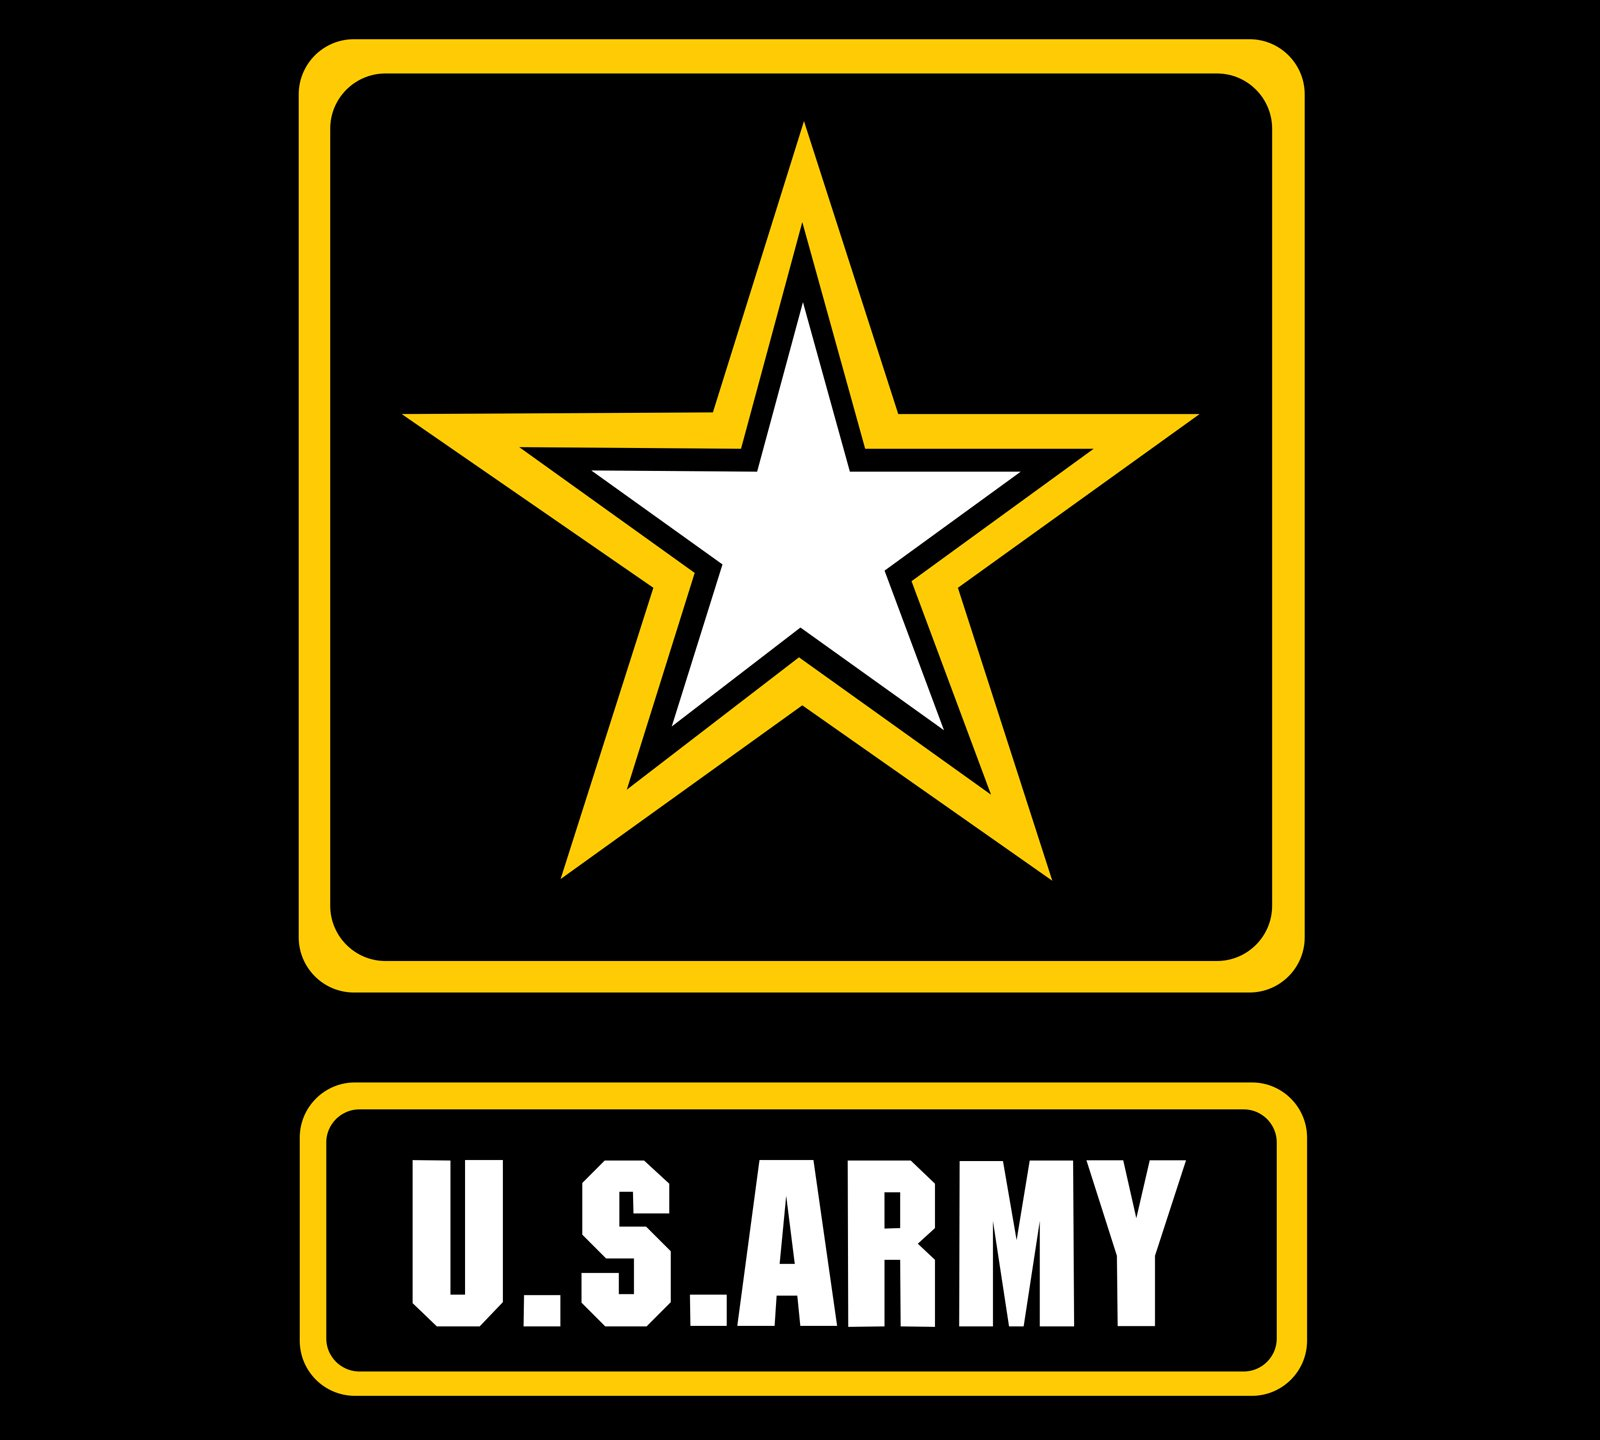 u s army logo u s army symbol meaning history and evolution rh 1000logos net